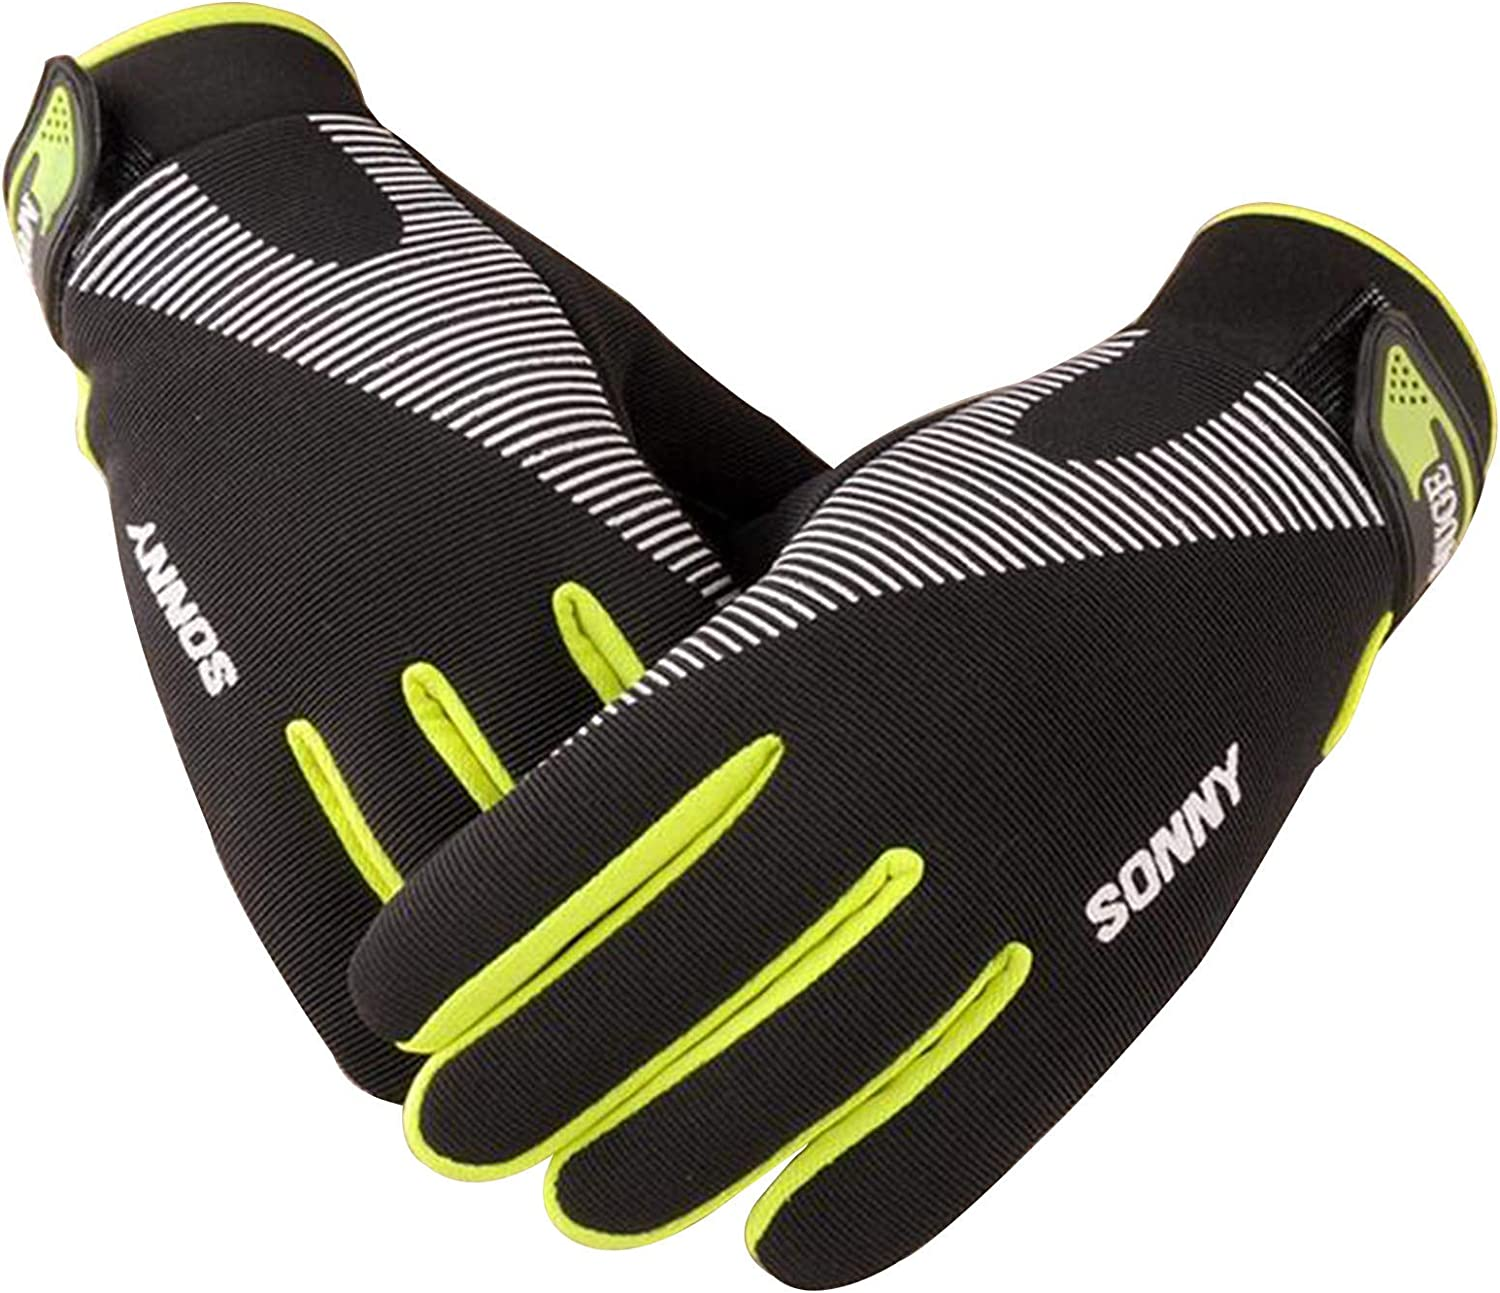 Winter Gloves for Men Women,warm outdoor cycling waterproof sports gloves in winter for Driving Running Cycling Hiking